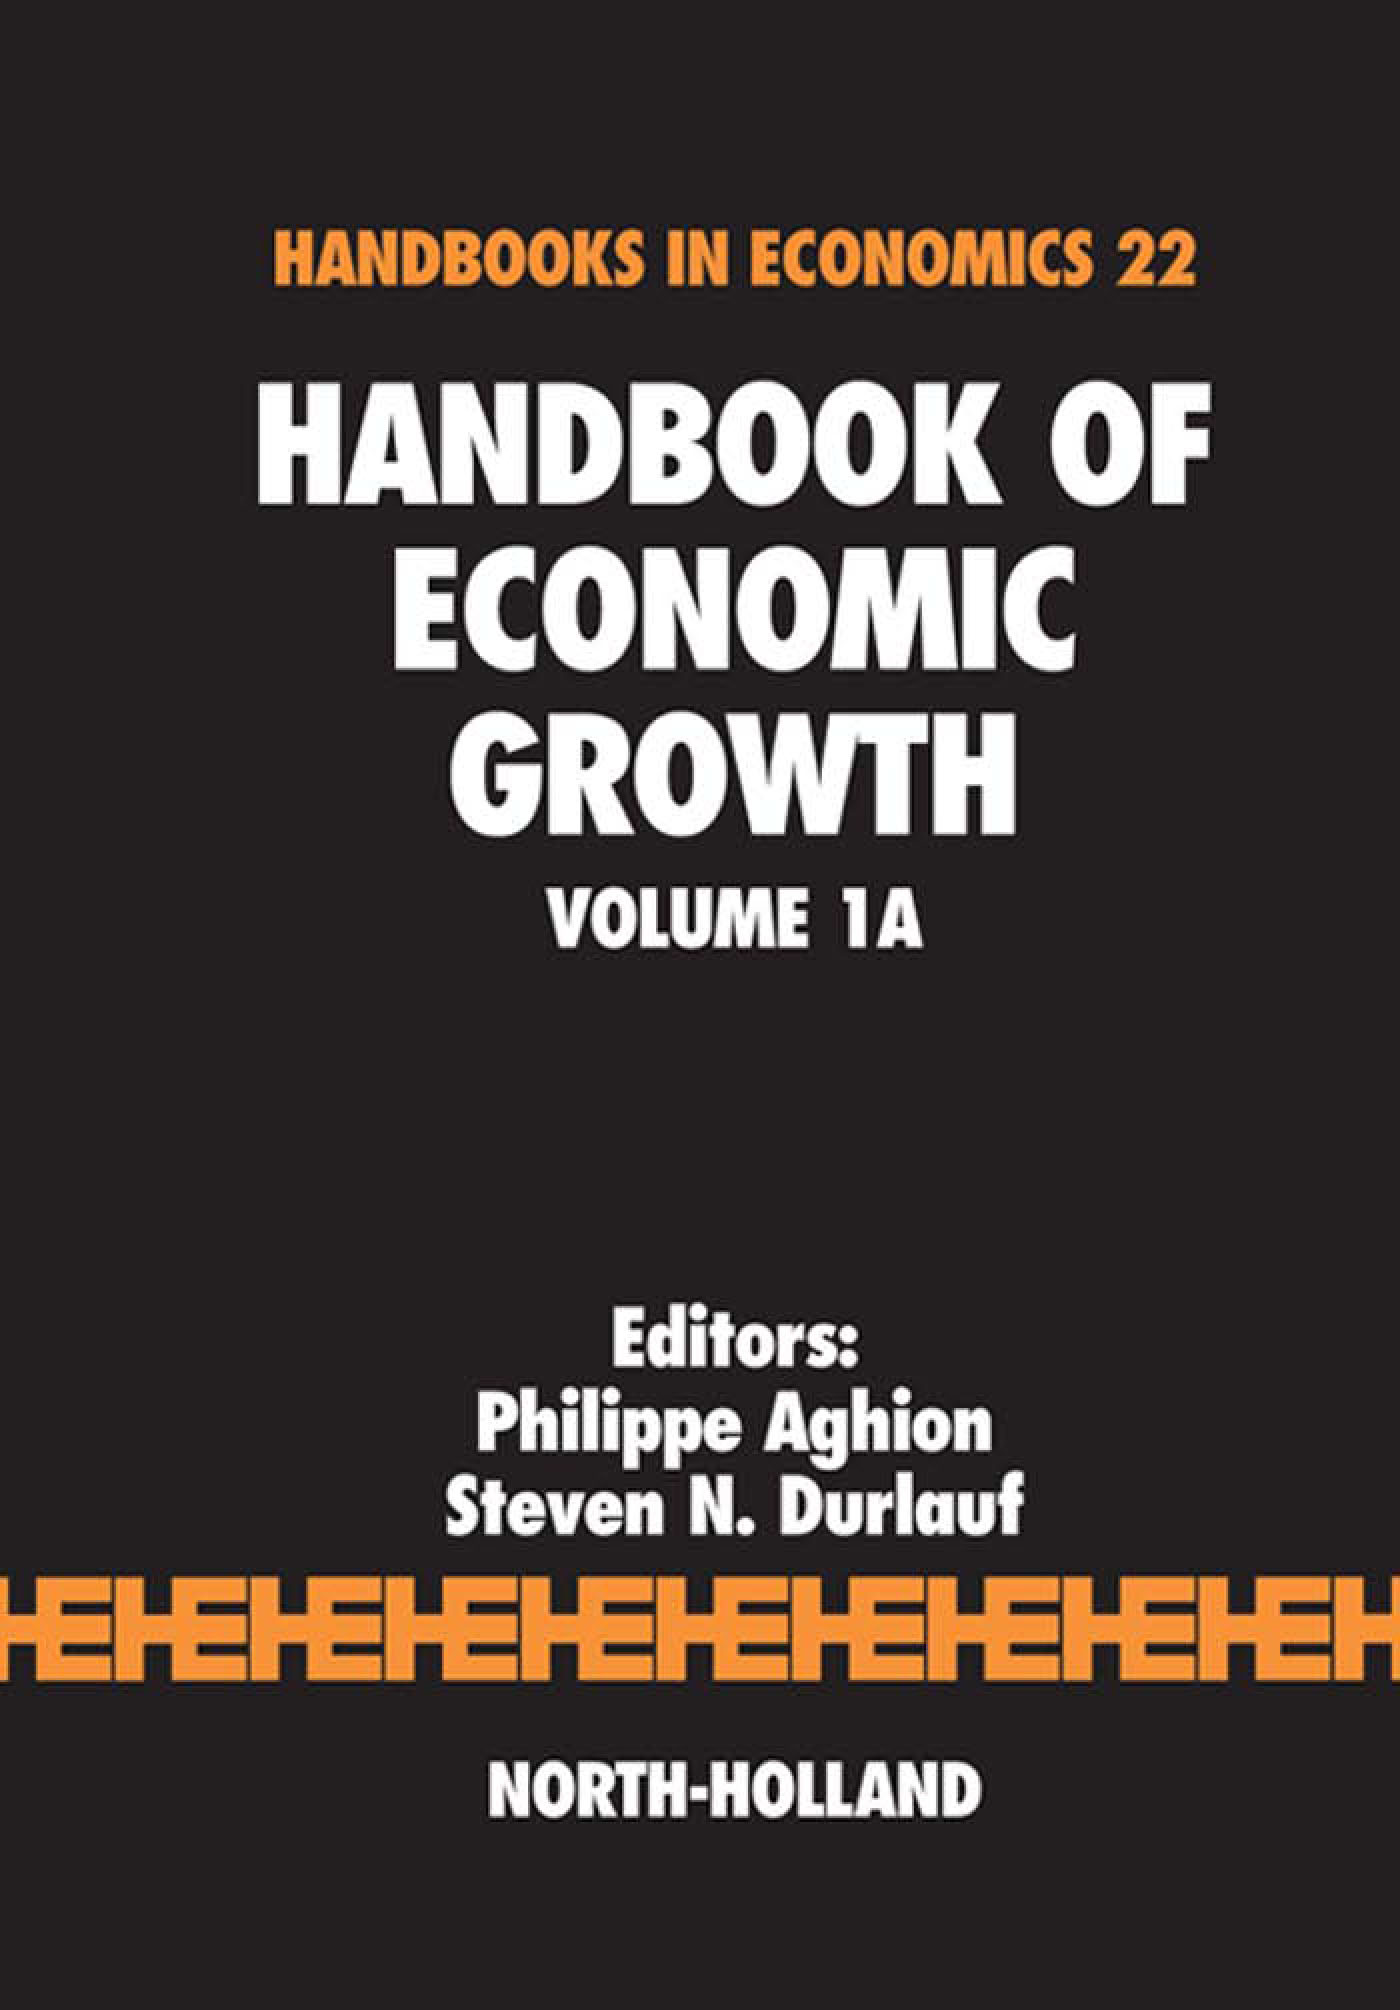 Download Ebook Handbook of Economic Growth by Philippe Aghion Pdf